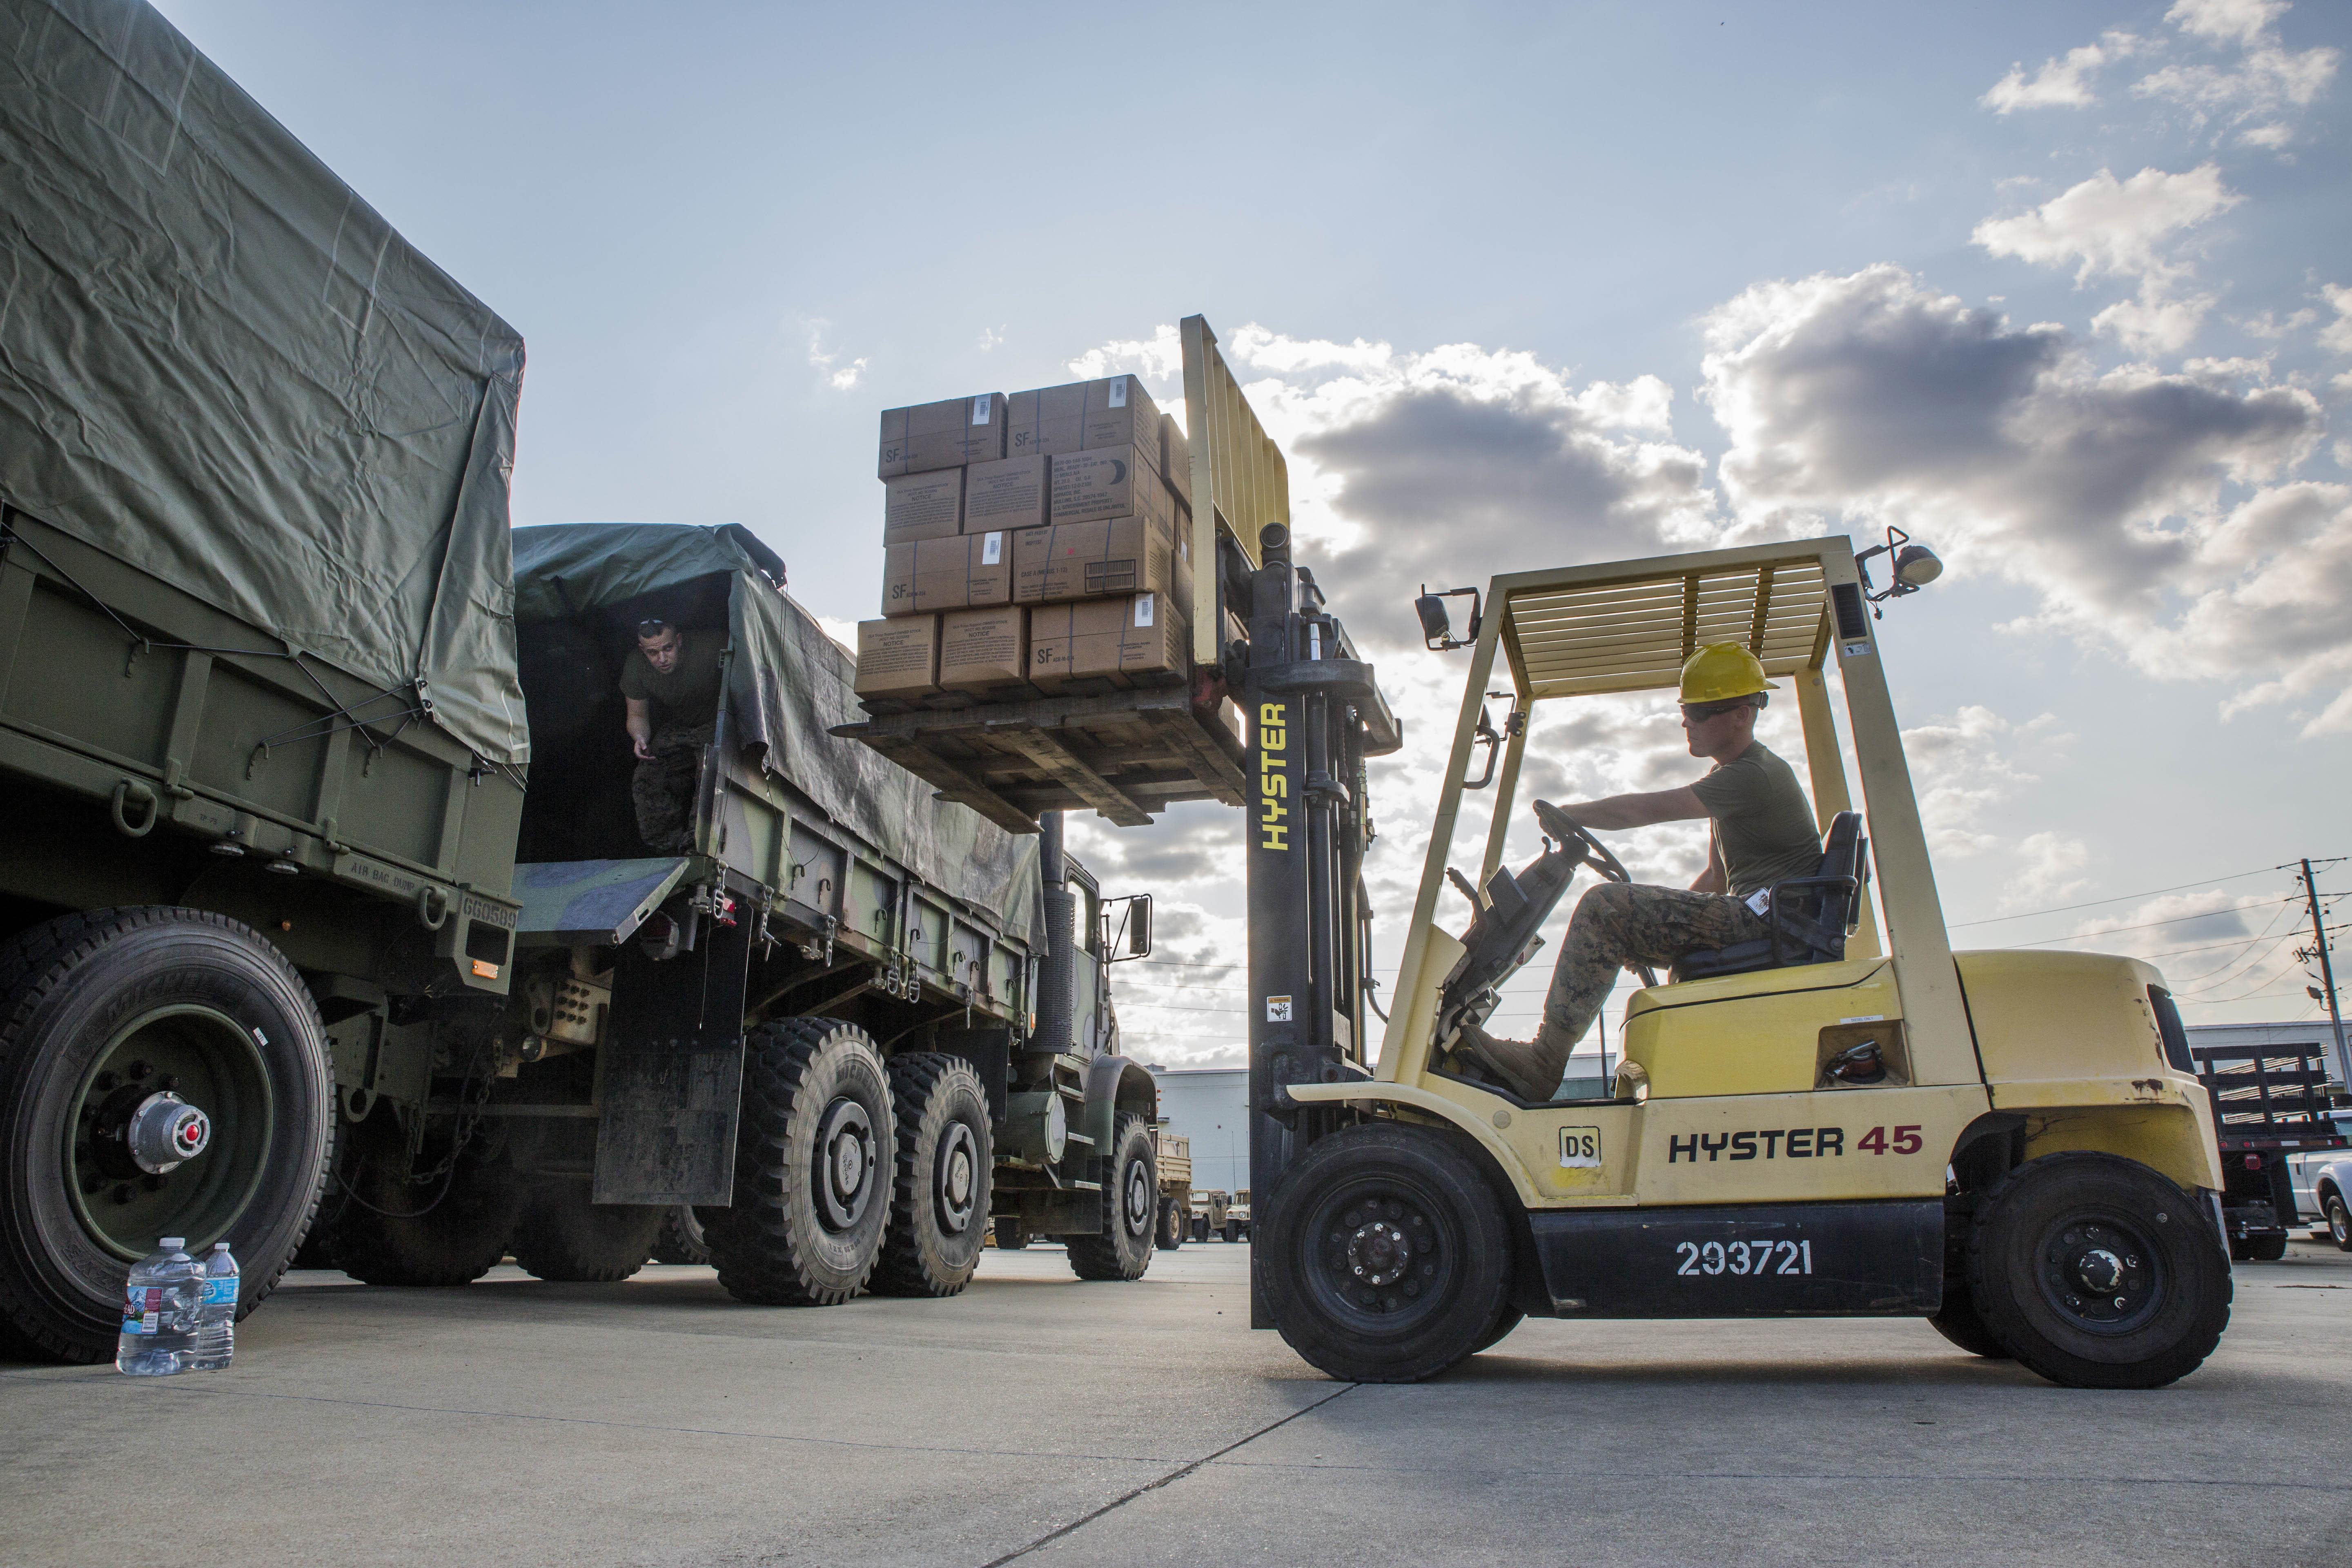 A forklift moves a pallet of boxes into the back of a truck